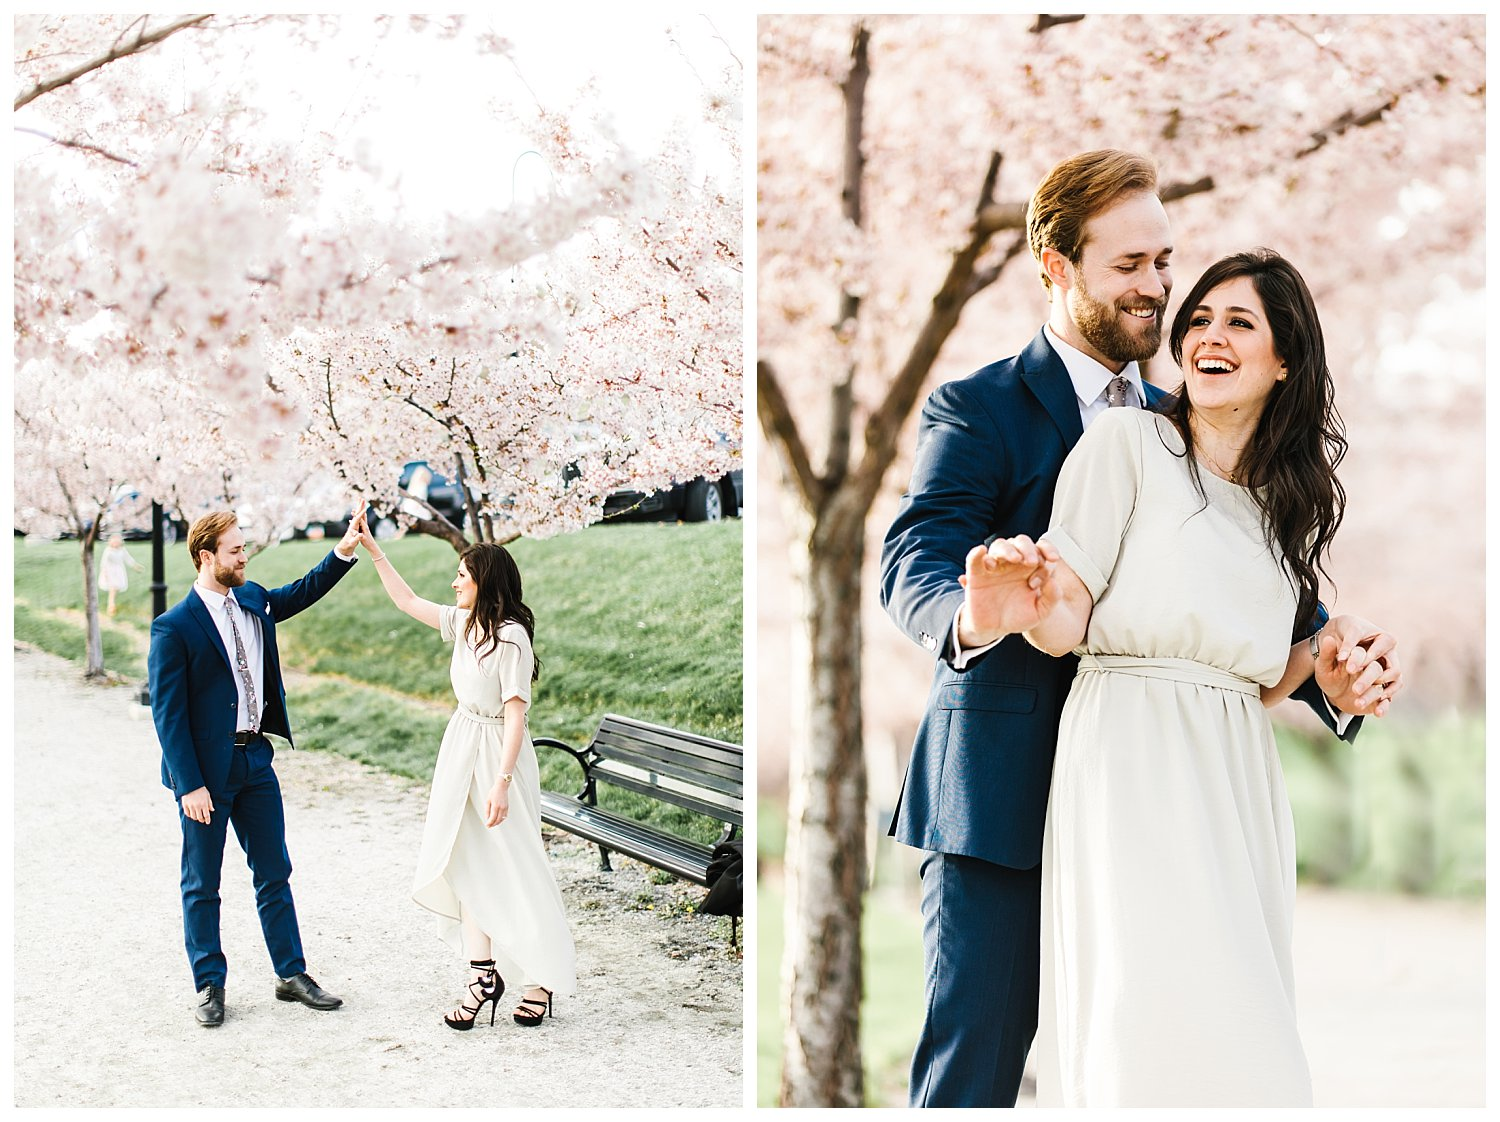 Joyful and natural engagement session at the Utah State Capitol with all the blossoms | Utah Wedding Photographer | Rachel Lindsey Photography